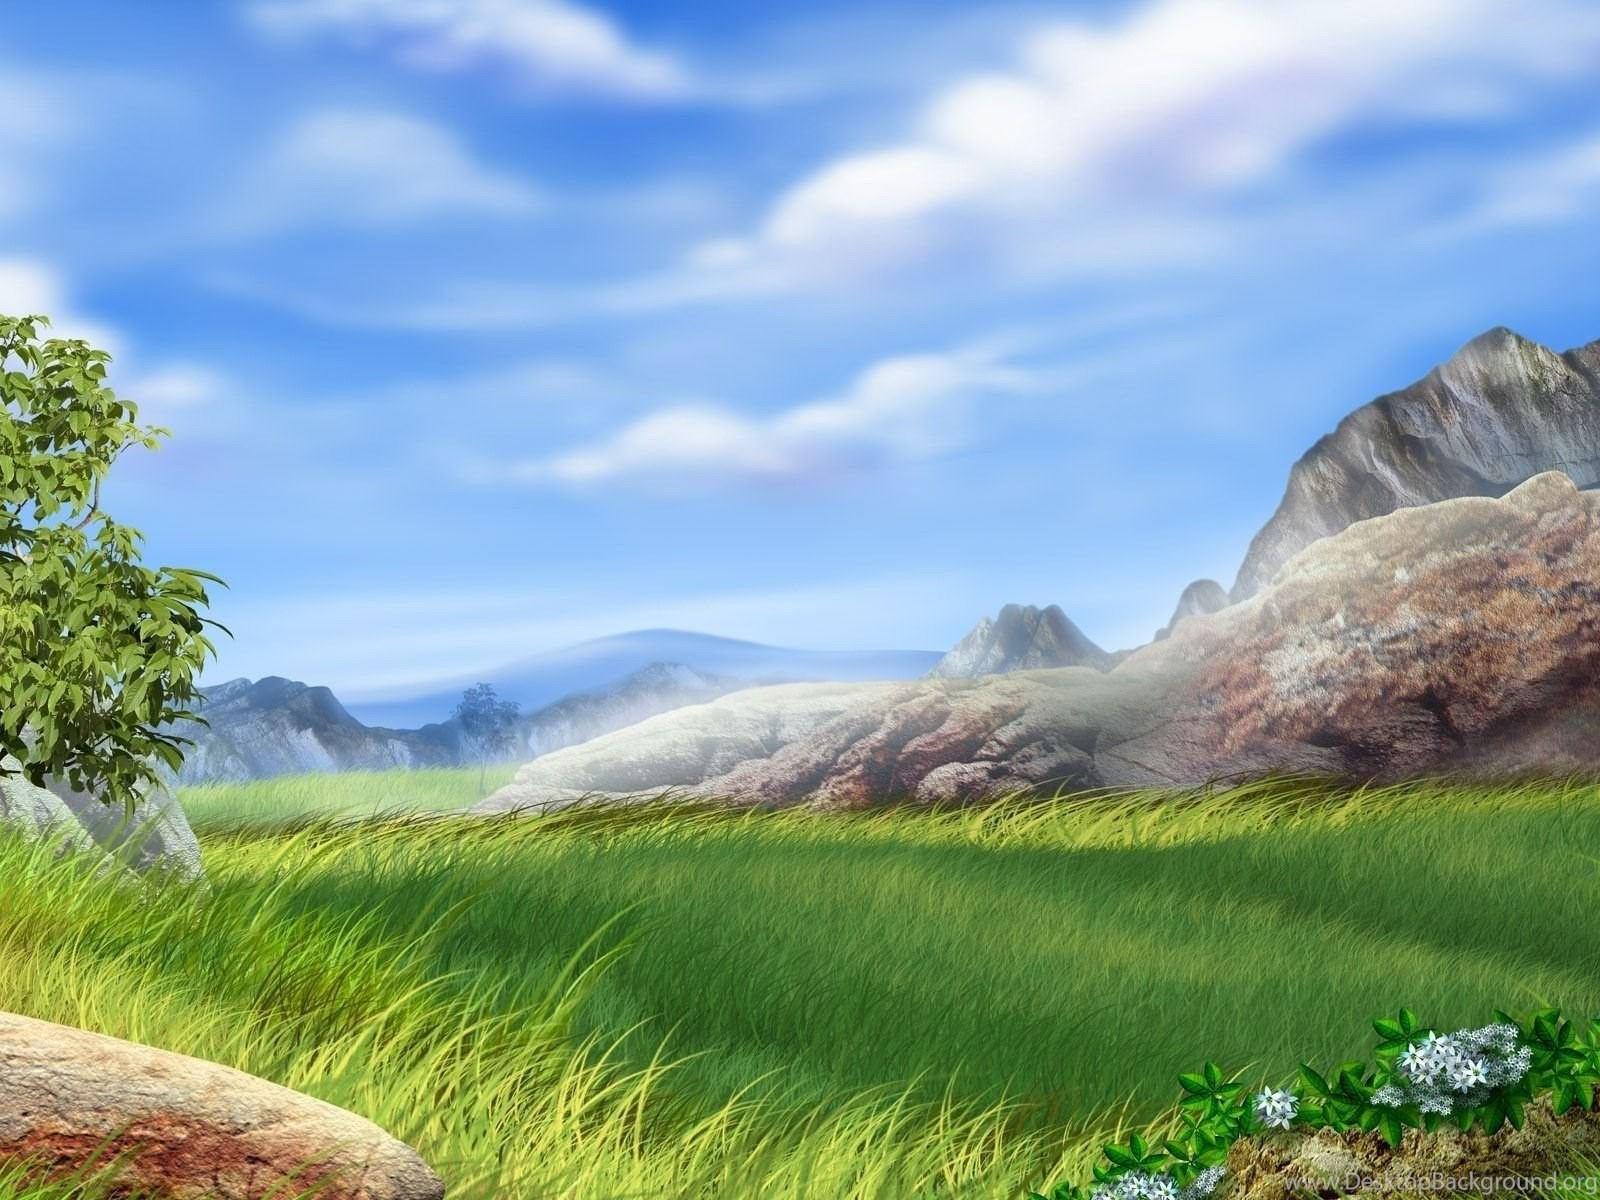 Hd Nature Wallpapers For Pc Full Screen Interfacelift Wallpaper